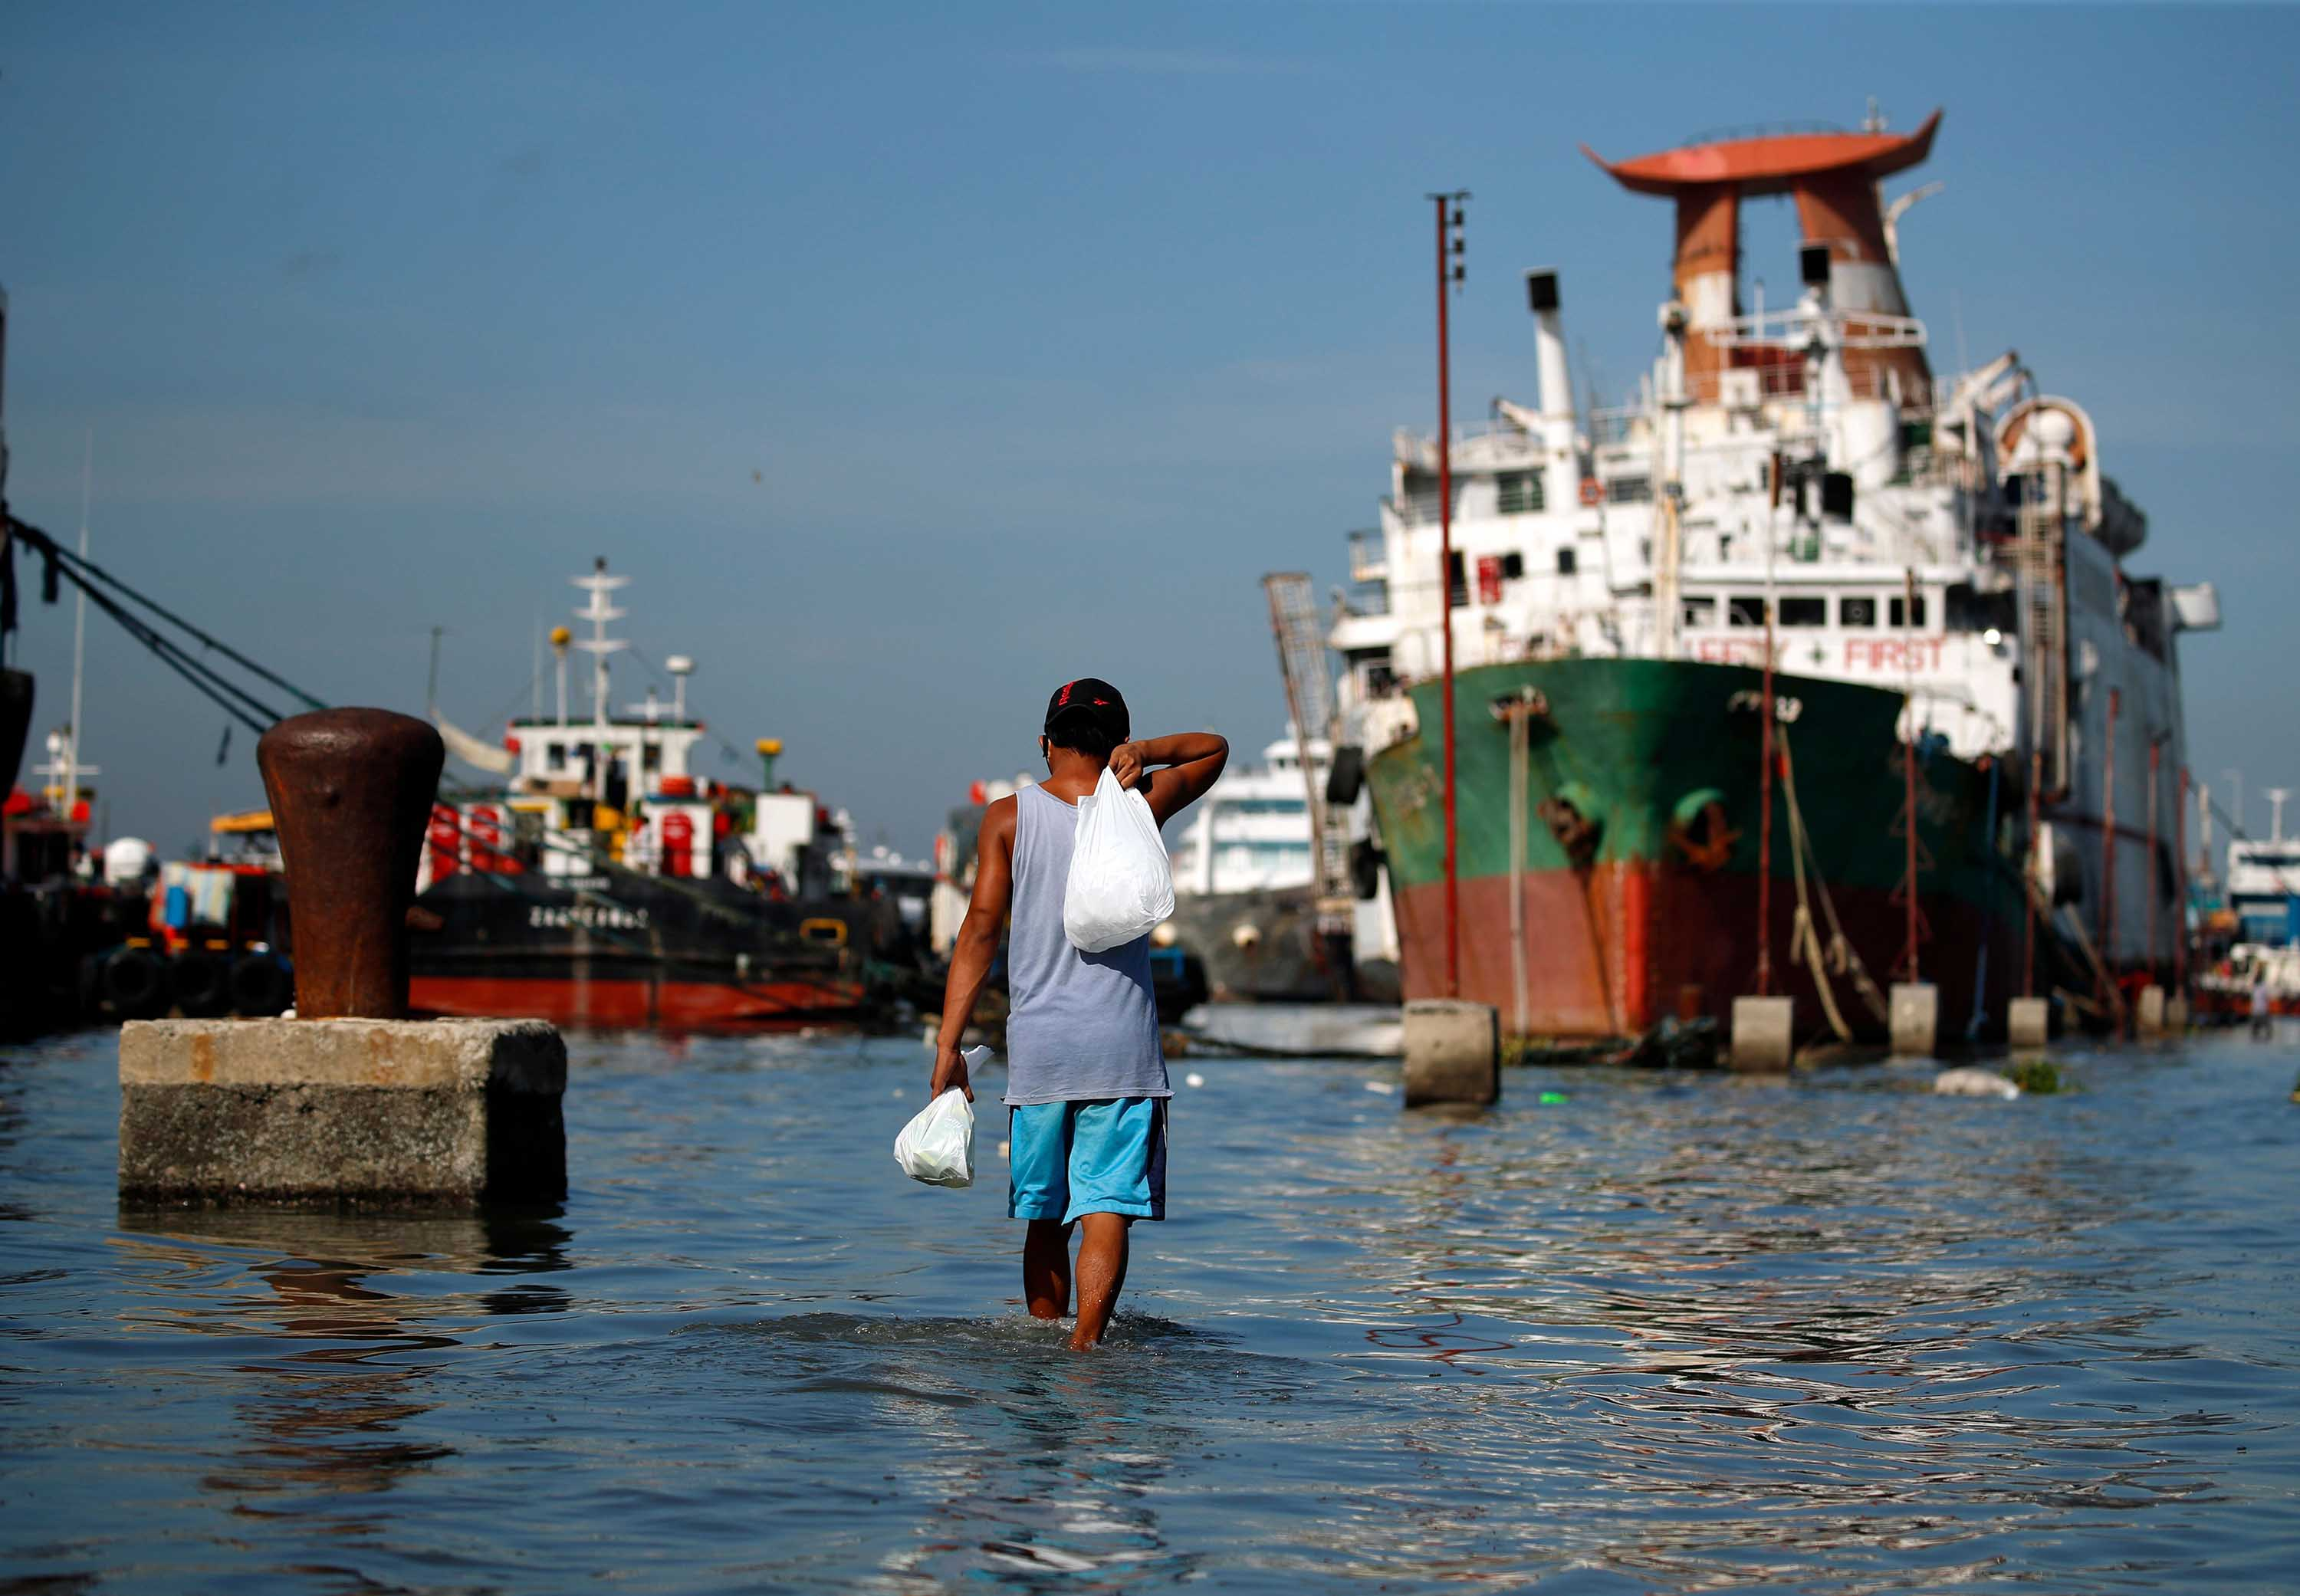 A fisherman wades in rising sea water at a port in Navotas city, Philippines, as a typhoon approached the region on May 14.